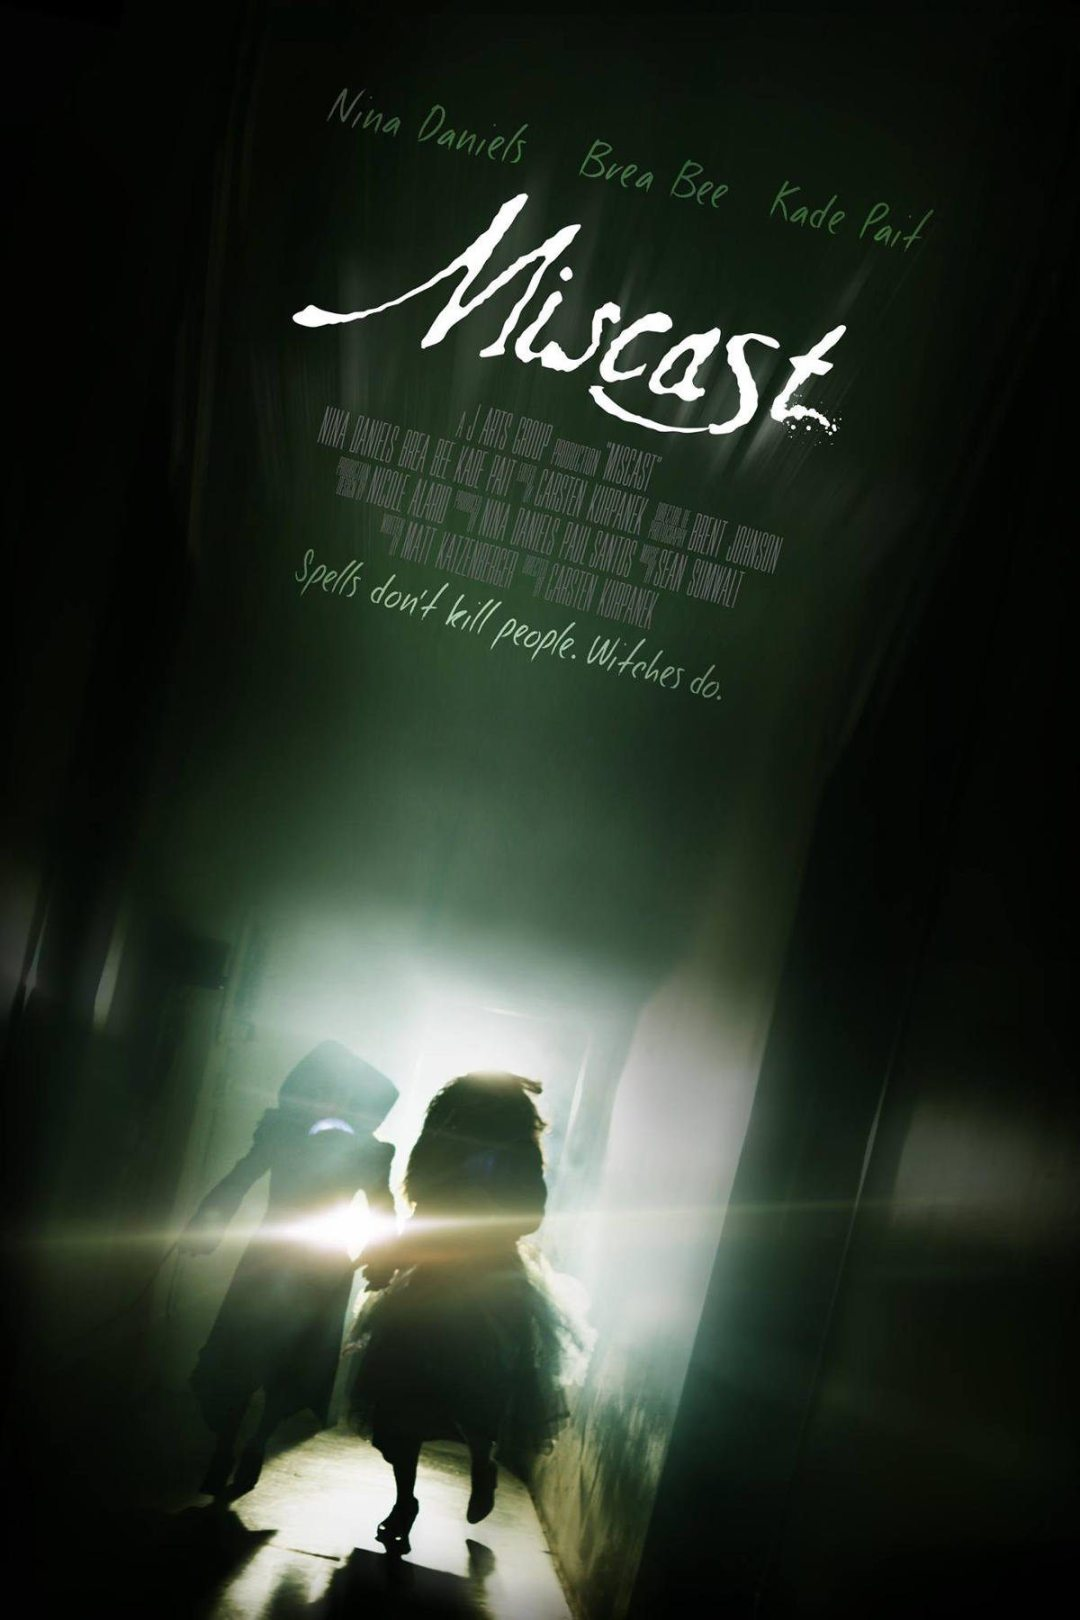 Don't Be 'Miscast' This Halloween!